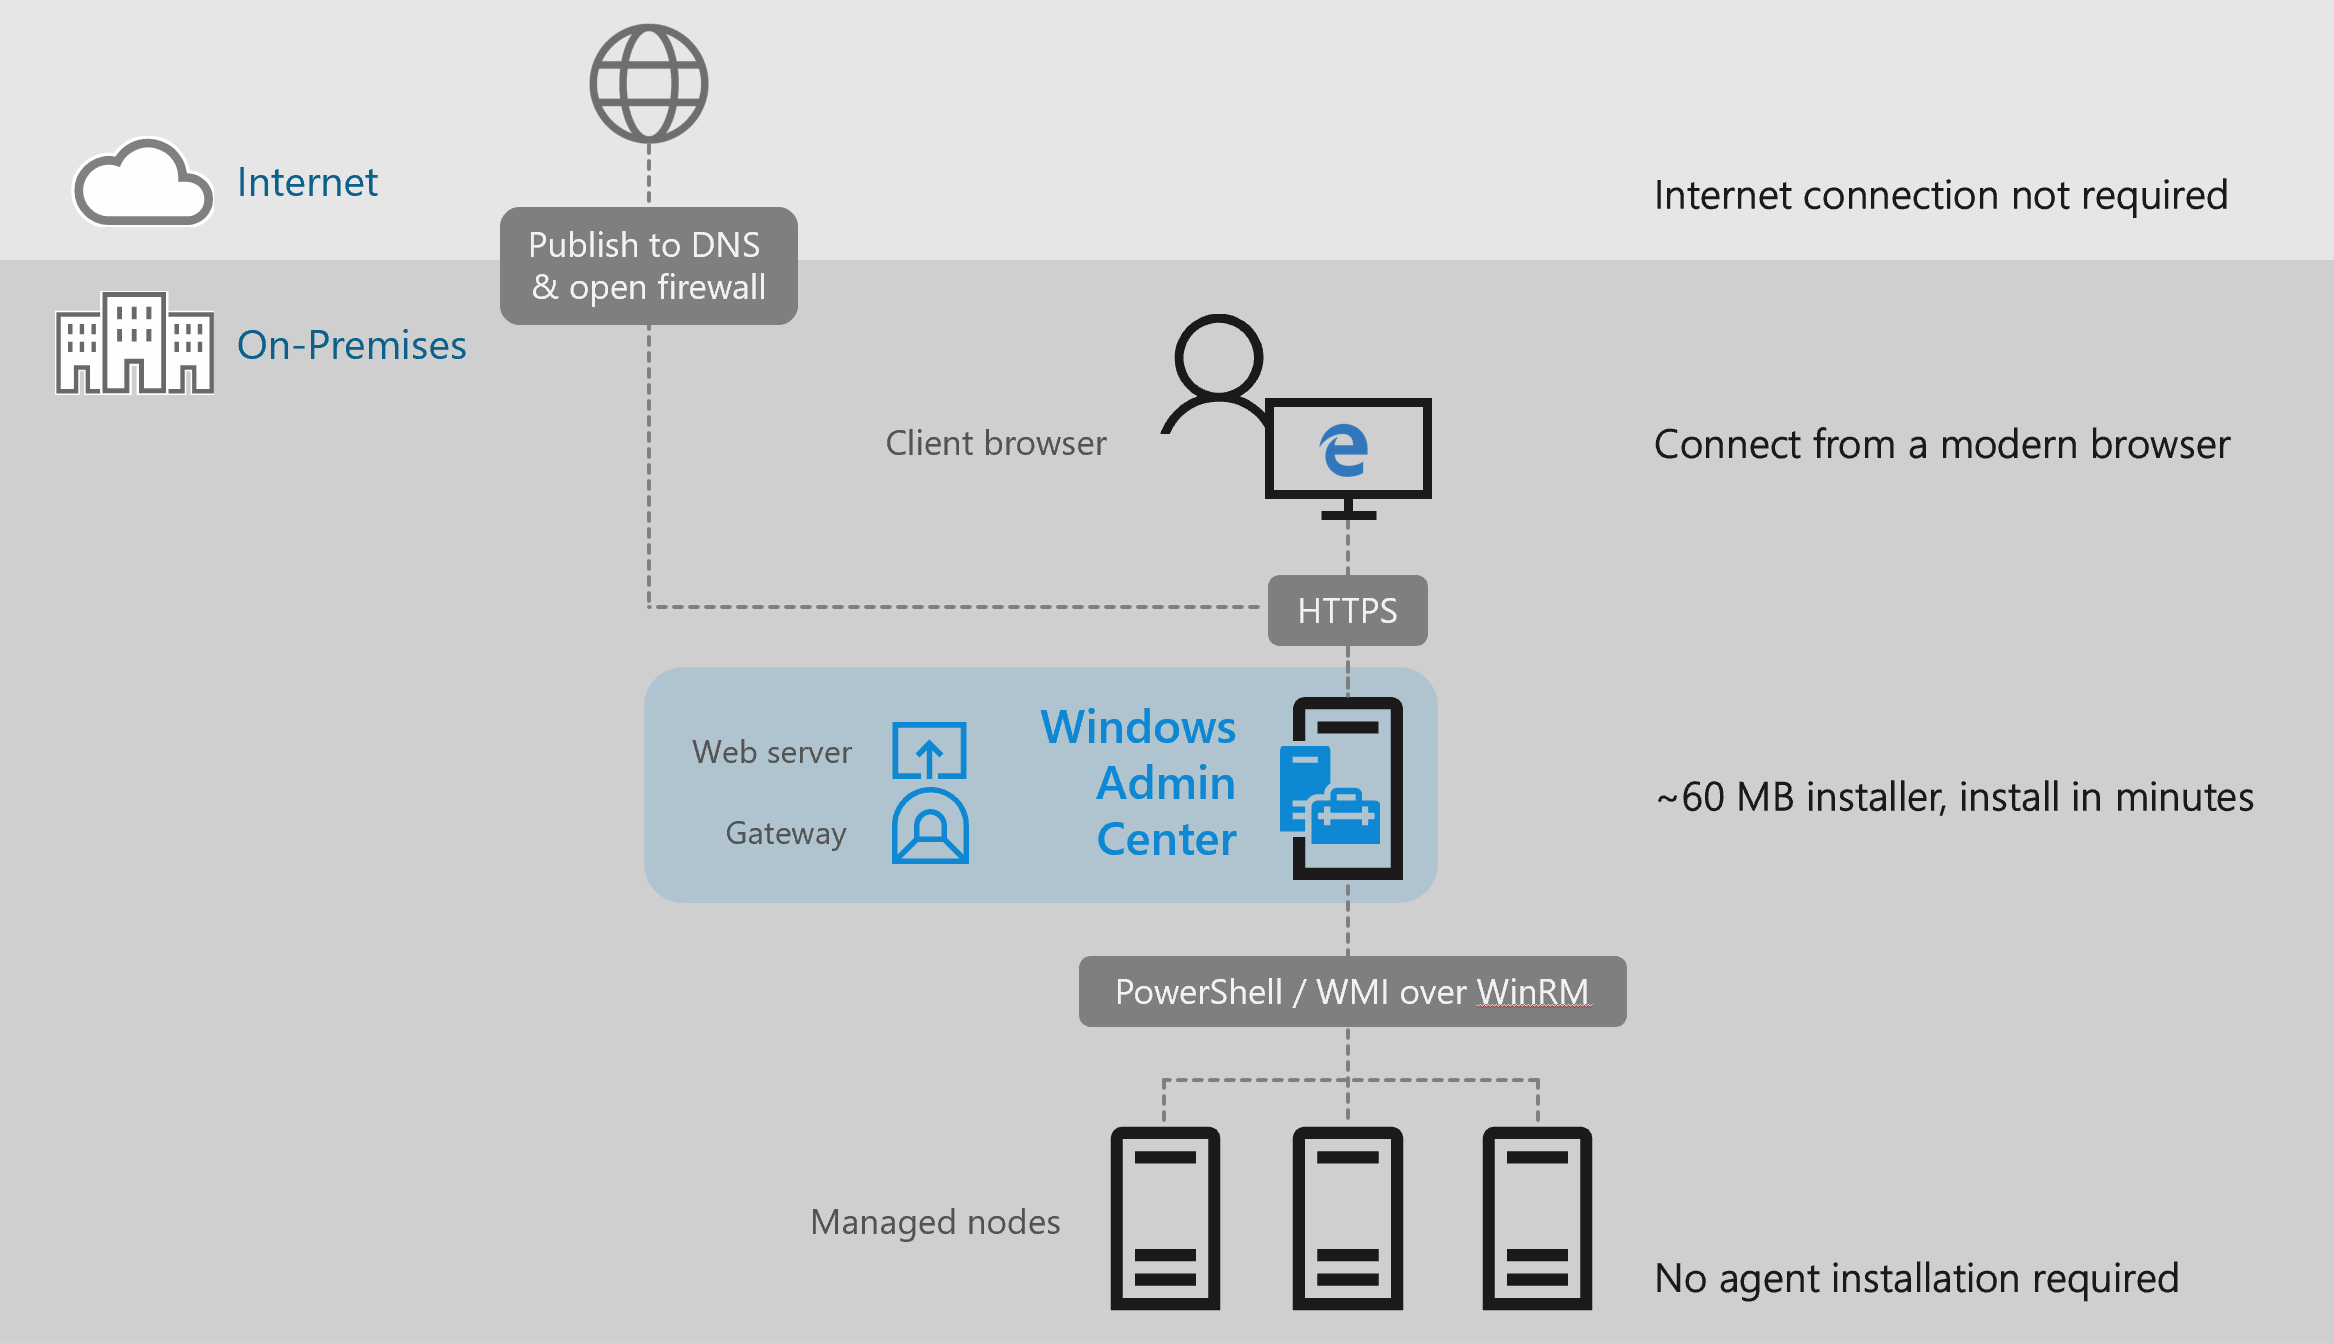 Windows Admin Center Architecture